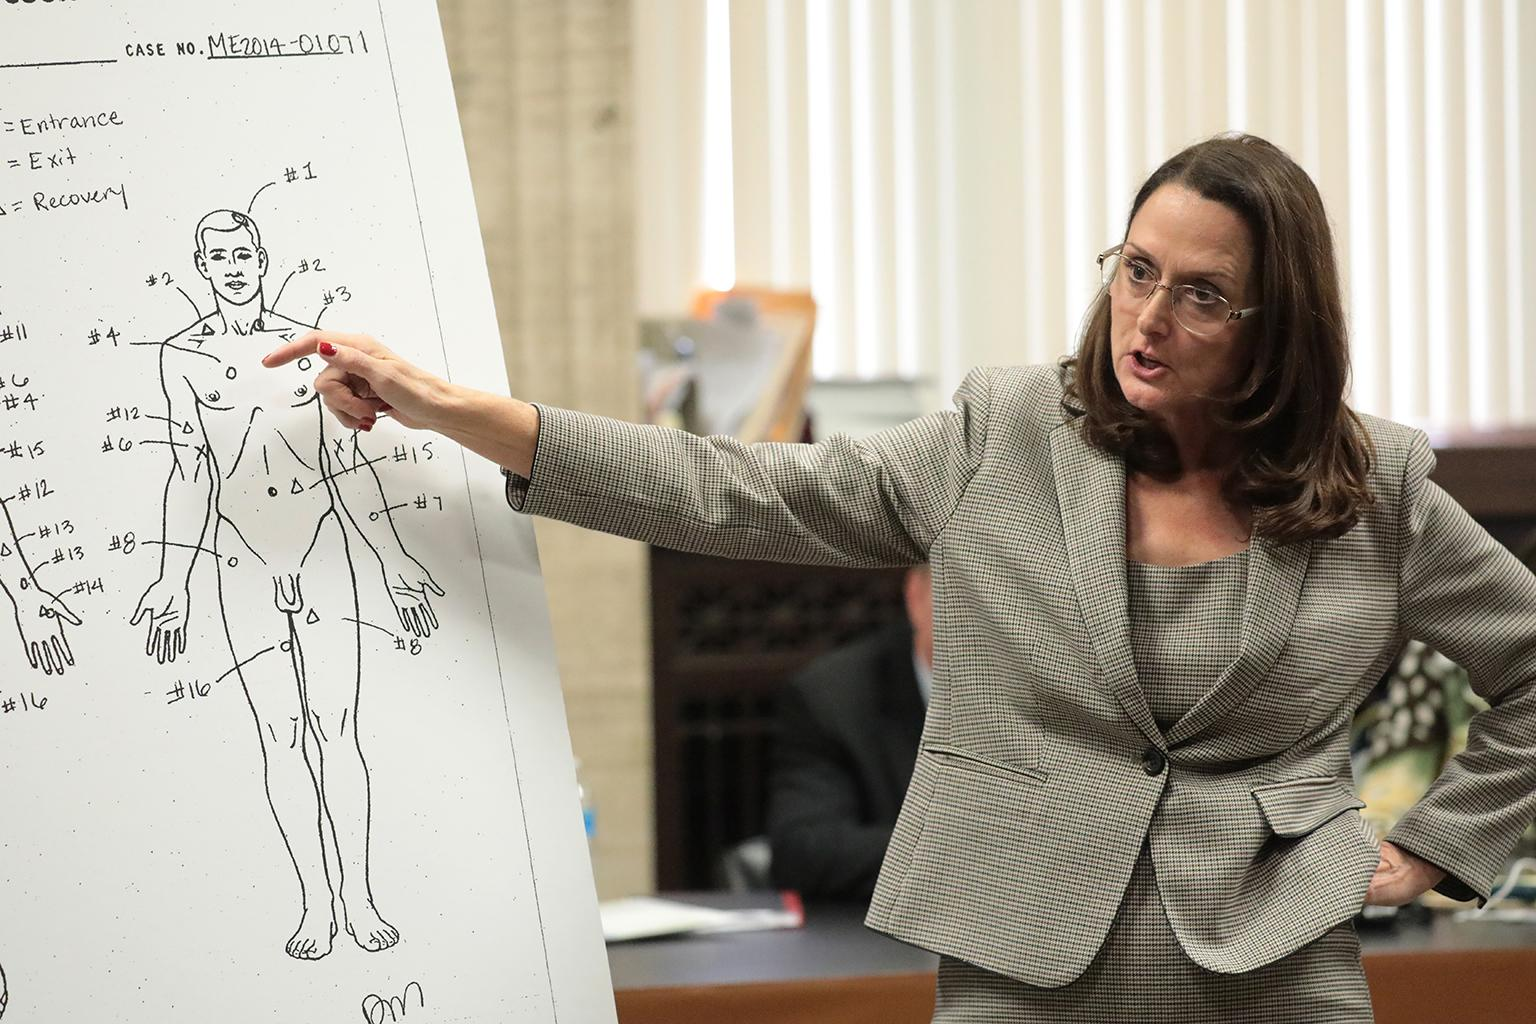 Prosecutor Jody Gleason points to a medical examiner's diagram showing the wounds to Laquan McDonald on Monday, Sept. 24, 2018. (Antonio Perez / Chicago Tribune / Pool)